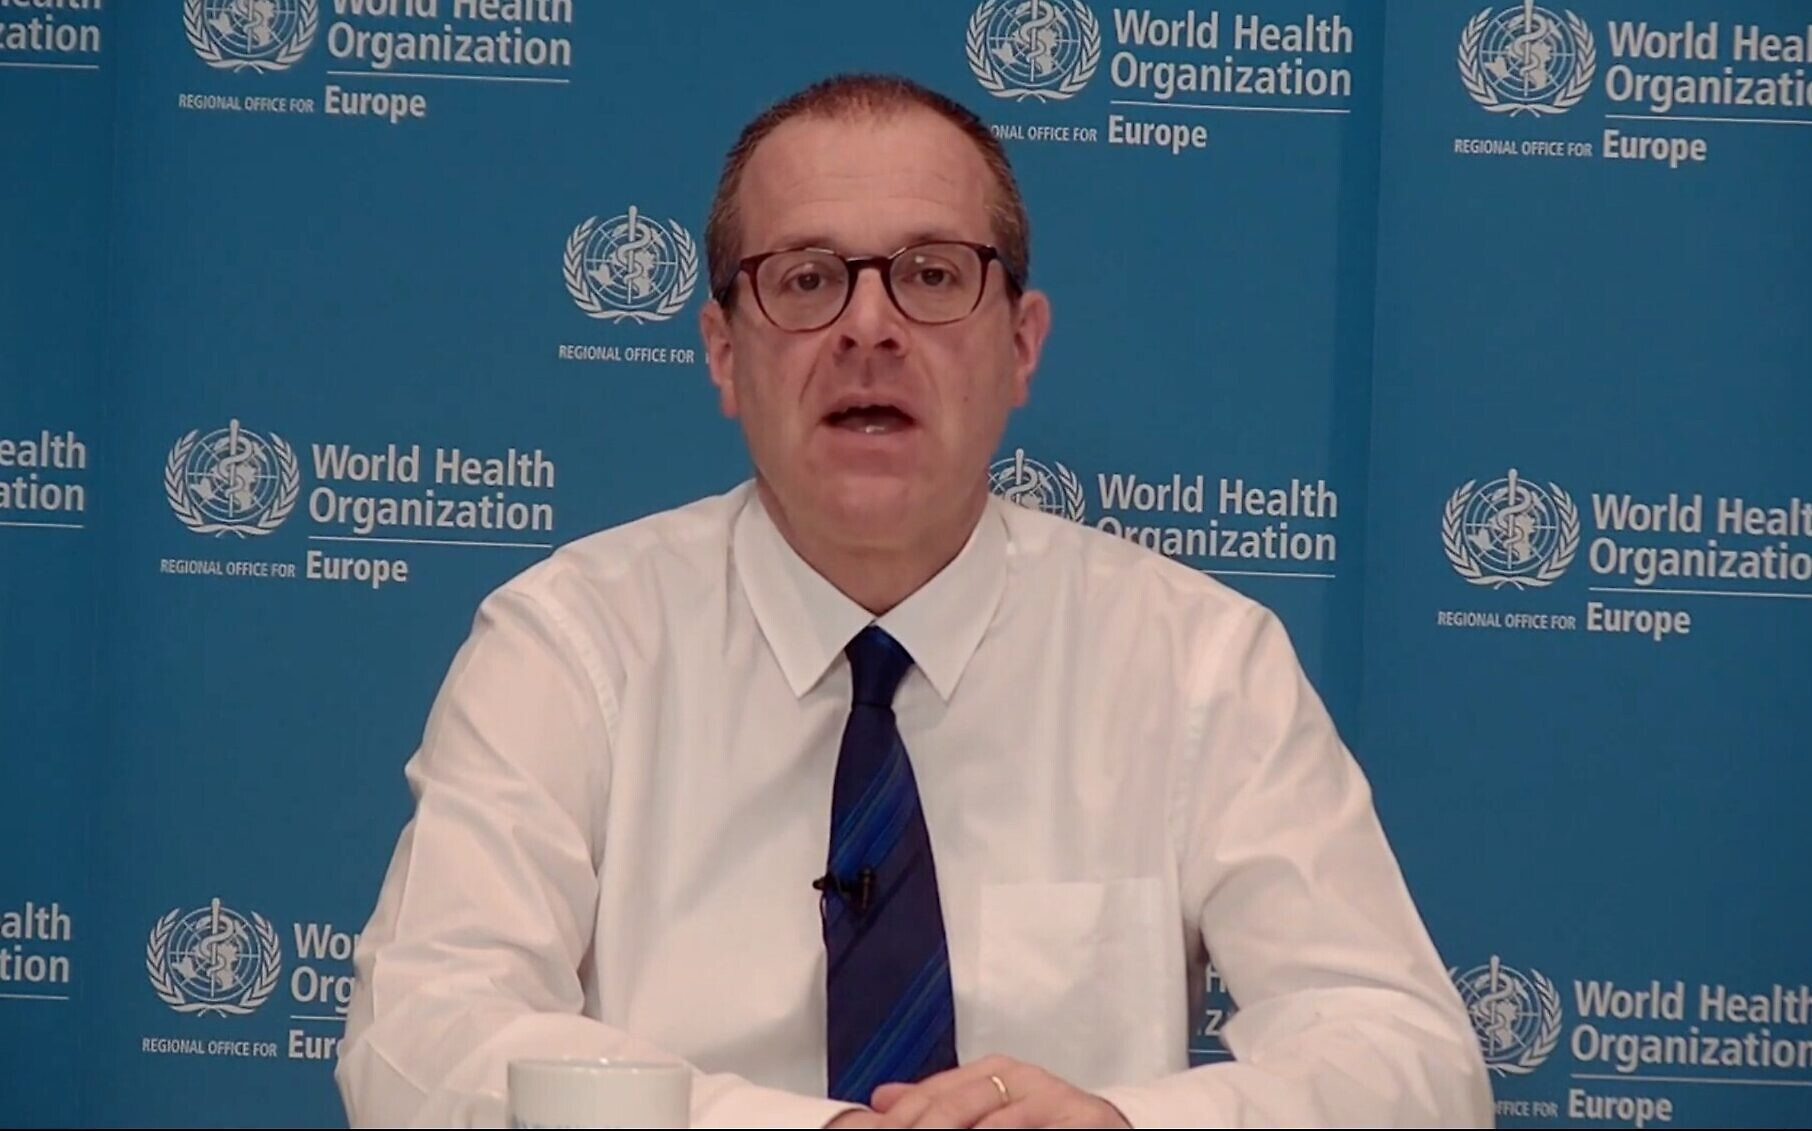 WHO Europe's Regional Director Hans Kluge (Photo: Times of Isareal)